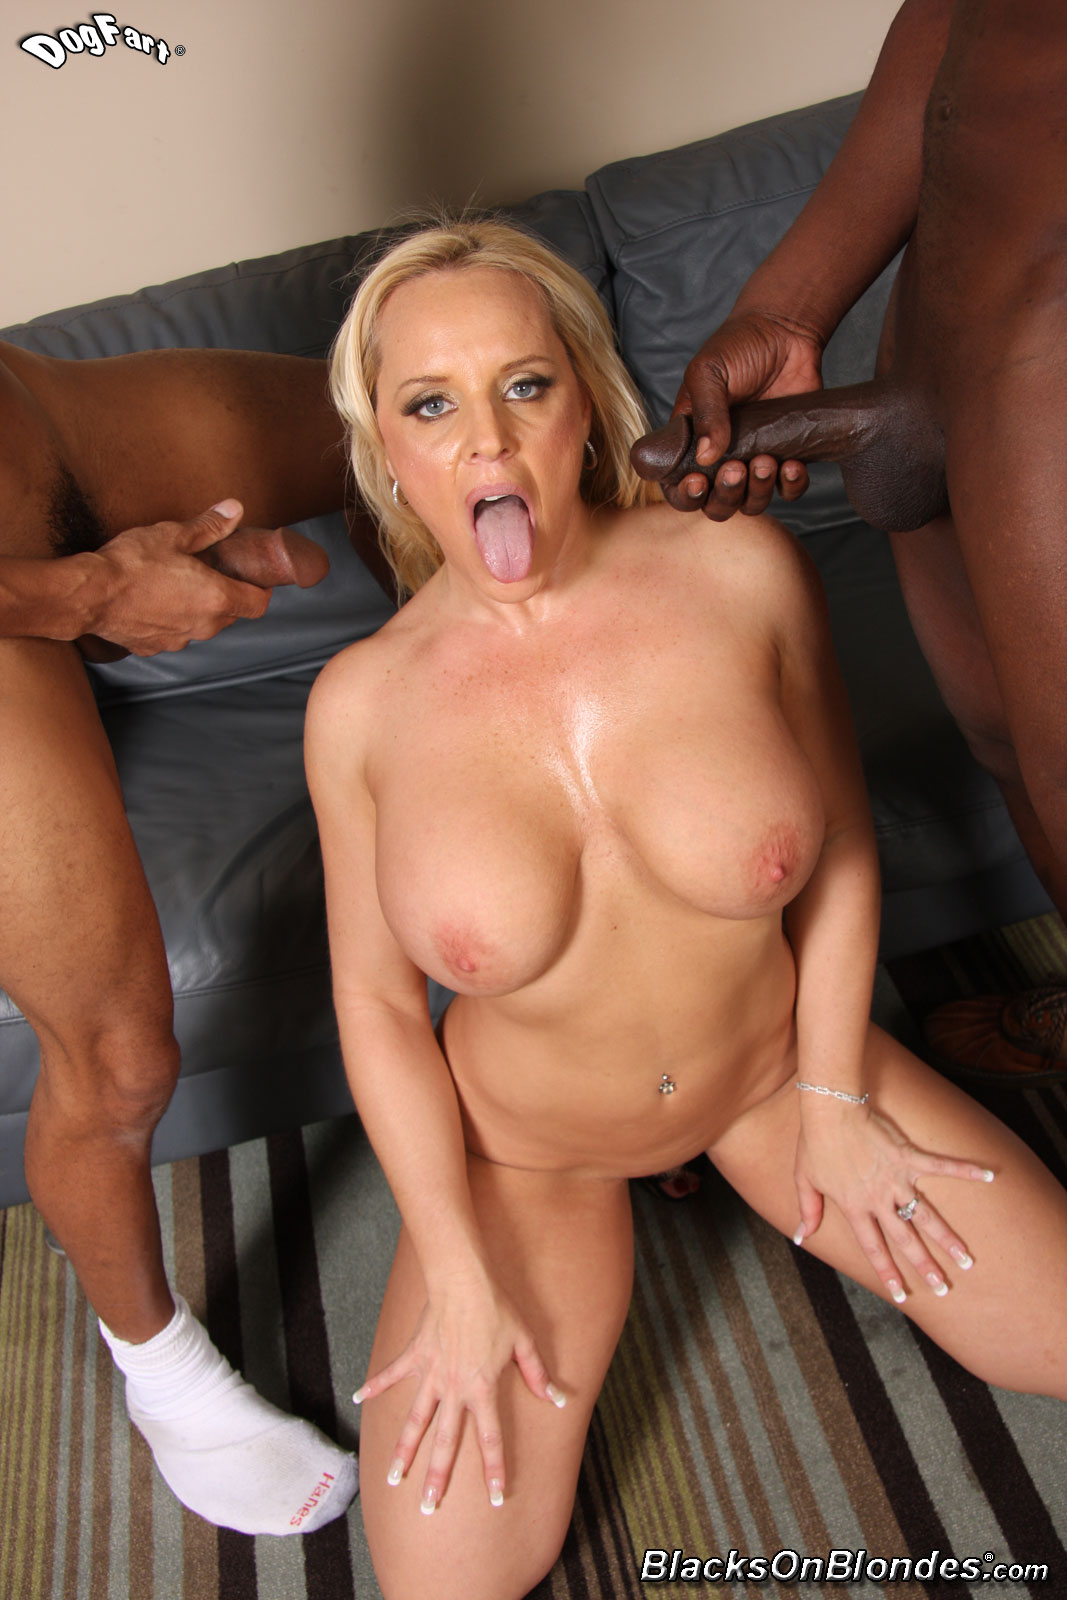 alexis golden - porn photos - photo 14, free sex photos, xxx pics